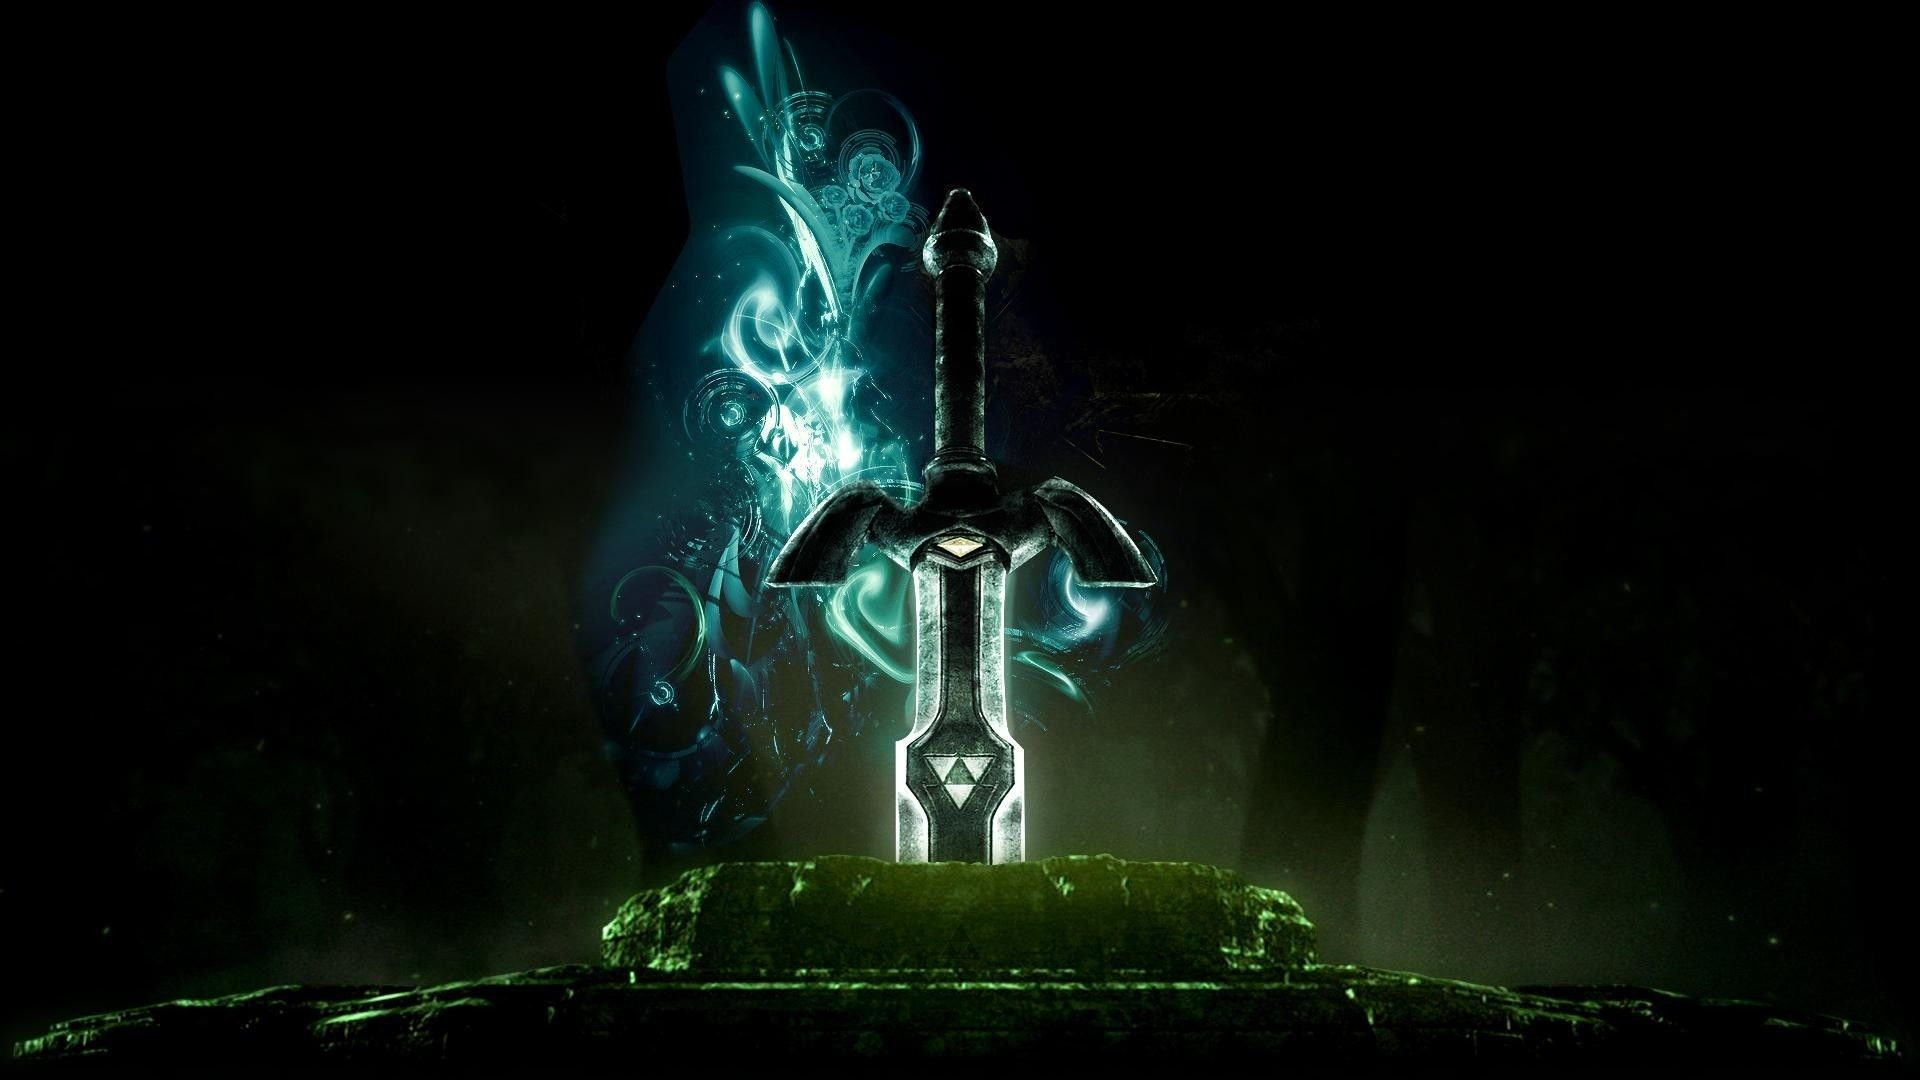 sword wallpaper hd